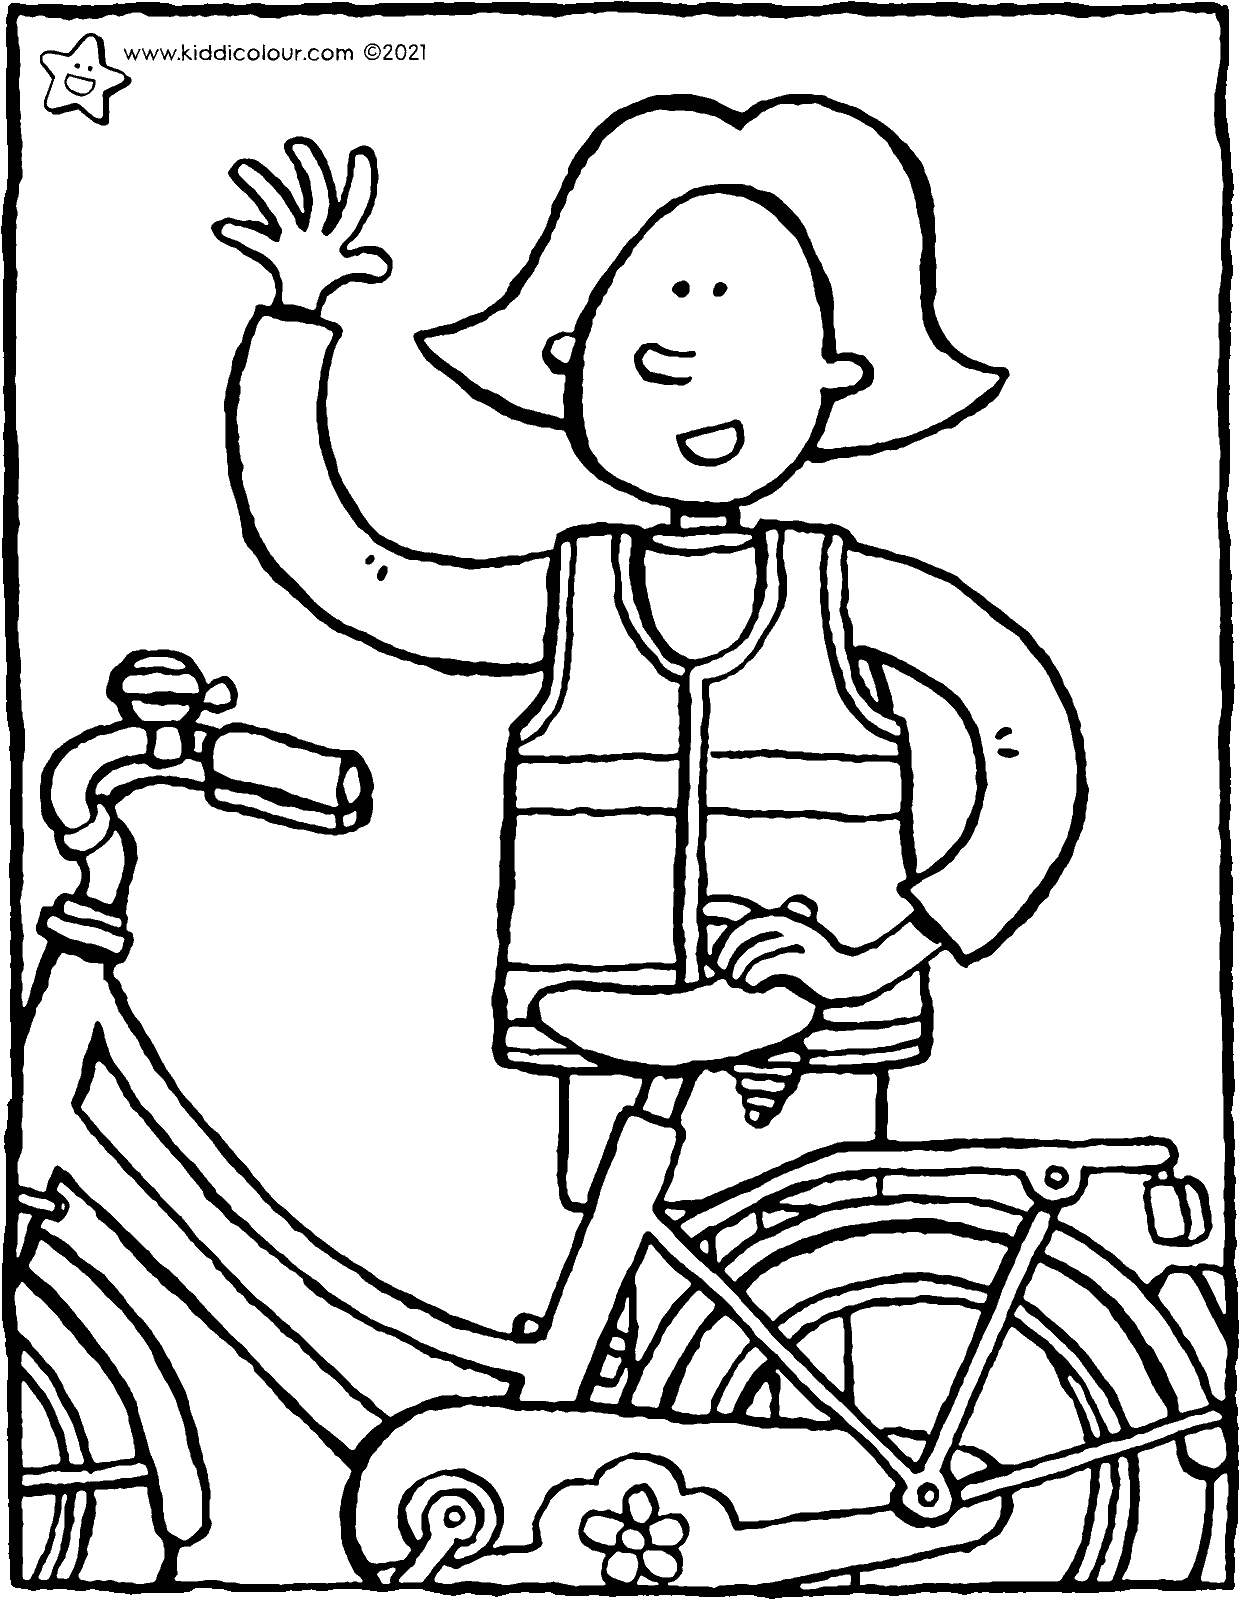 Emma in a high-vis vest colouring page drawing picture 01V